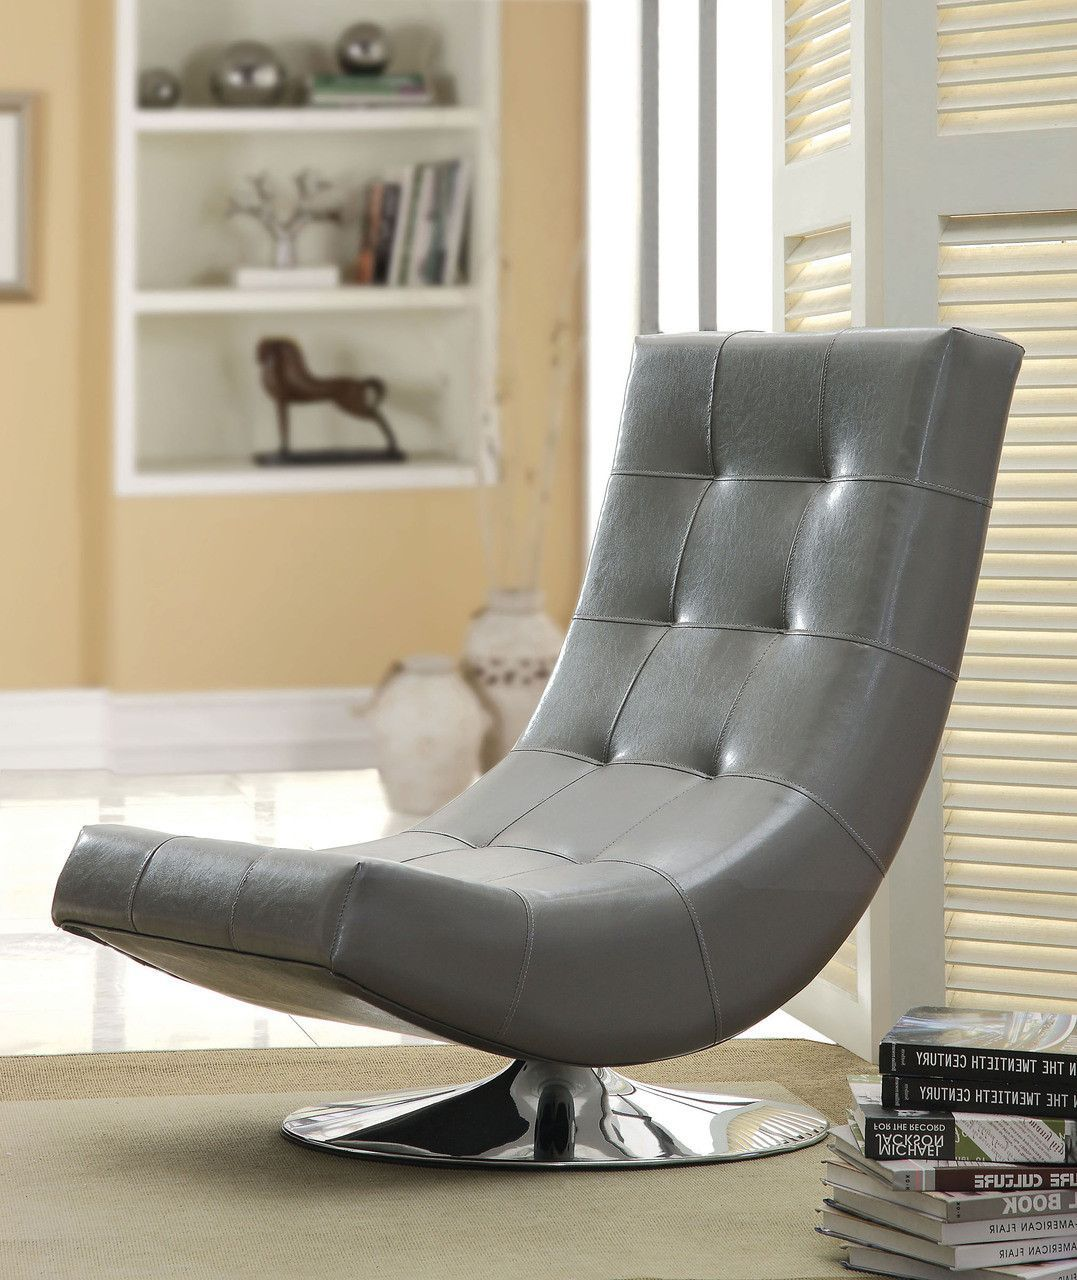 swivel accent chairs for living room. Furniture of America Dresden Leatherette Swivel Armless Accent Chair  Gray Clean simple lines mean this modern swivel accent chair blends well with a ACCENT CHAIR IN GRAY CM AC6912GY TRINIDAD COLLECTION Ultra